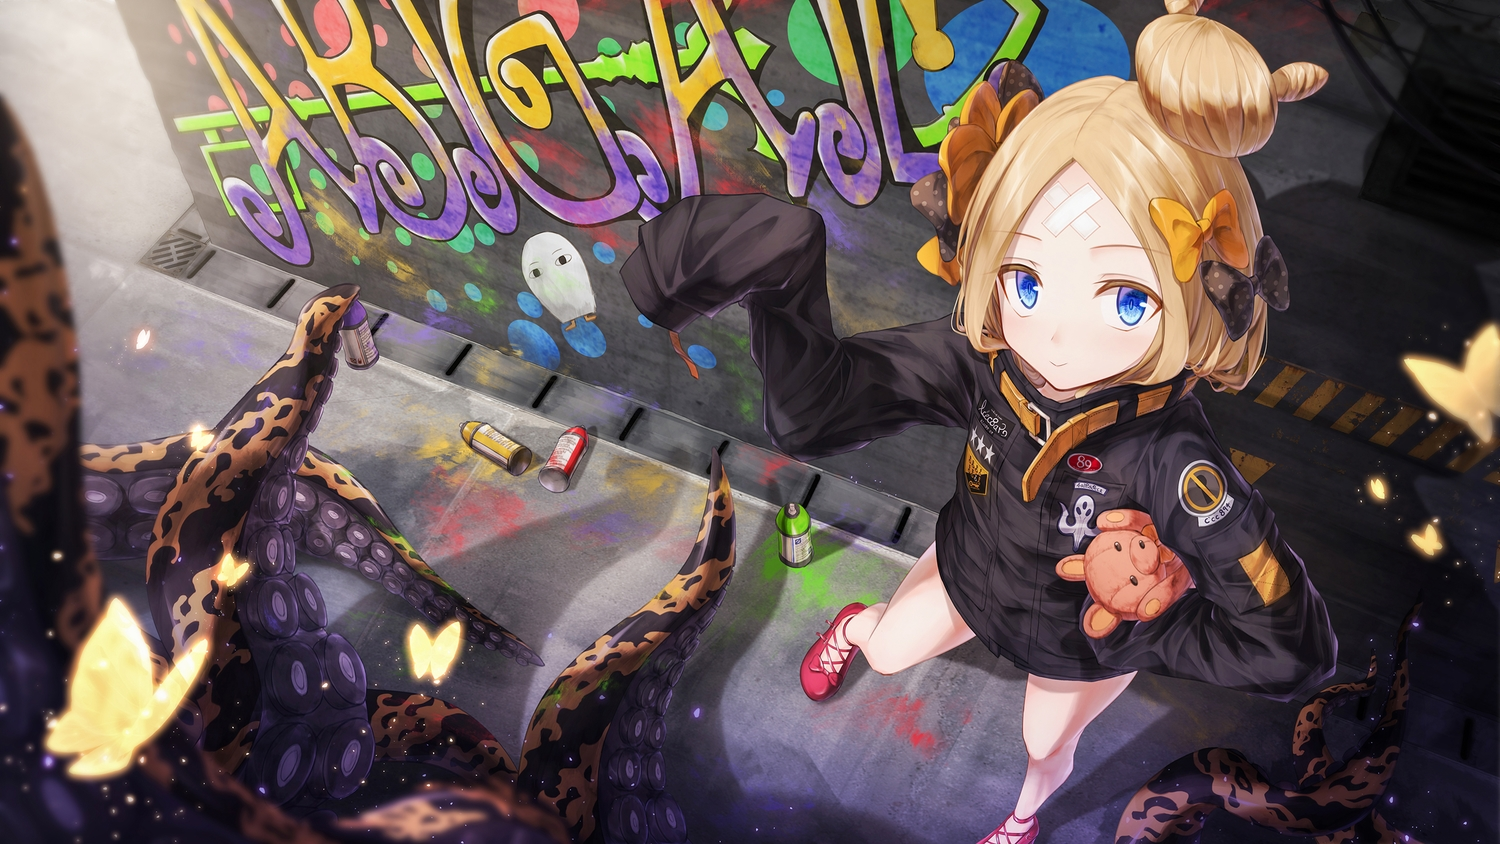 abigail_williams_(fate/grand_order) animal blonde_hair blue_eyes bow boyogo butterfly fate/grand_order fate_(series) graffiti loli teddy_bear tentacles